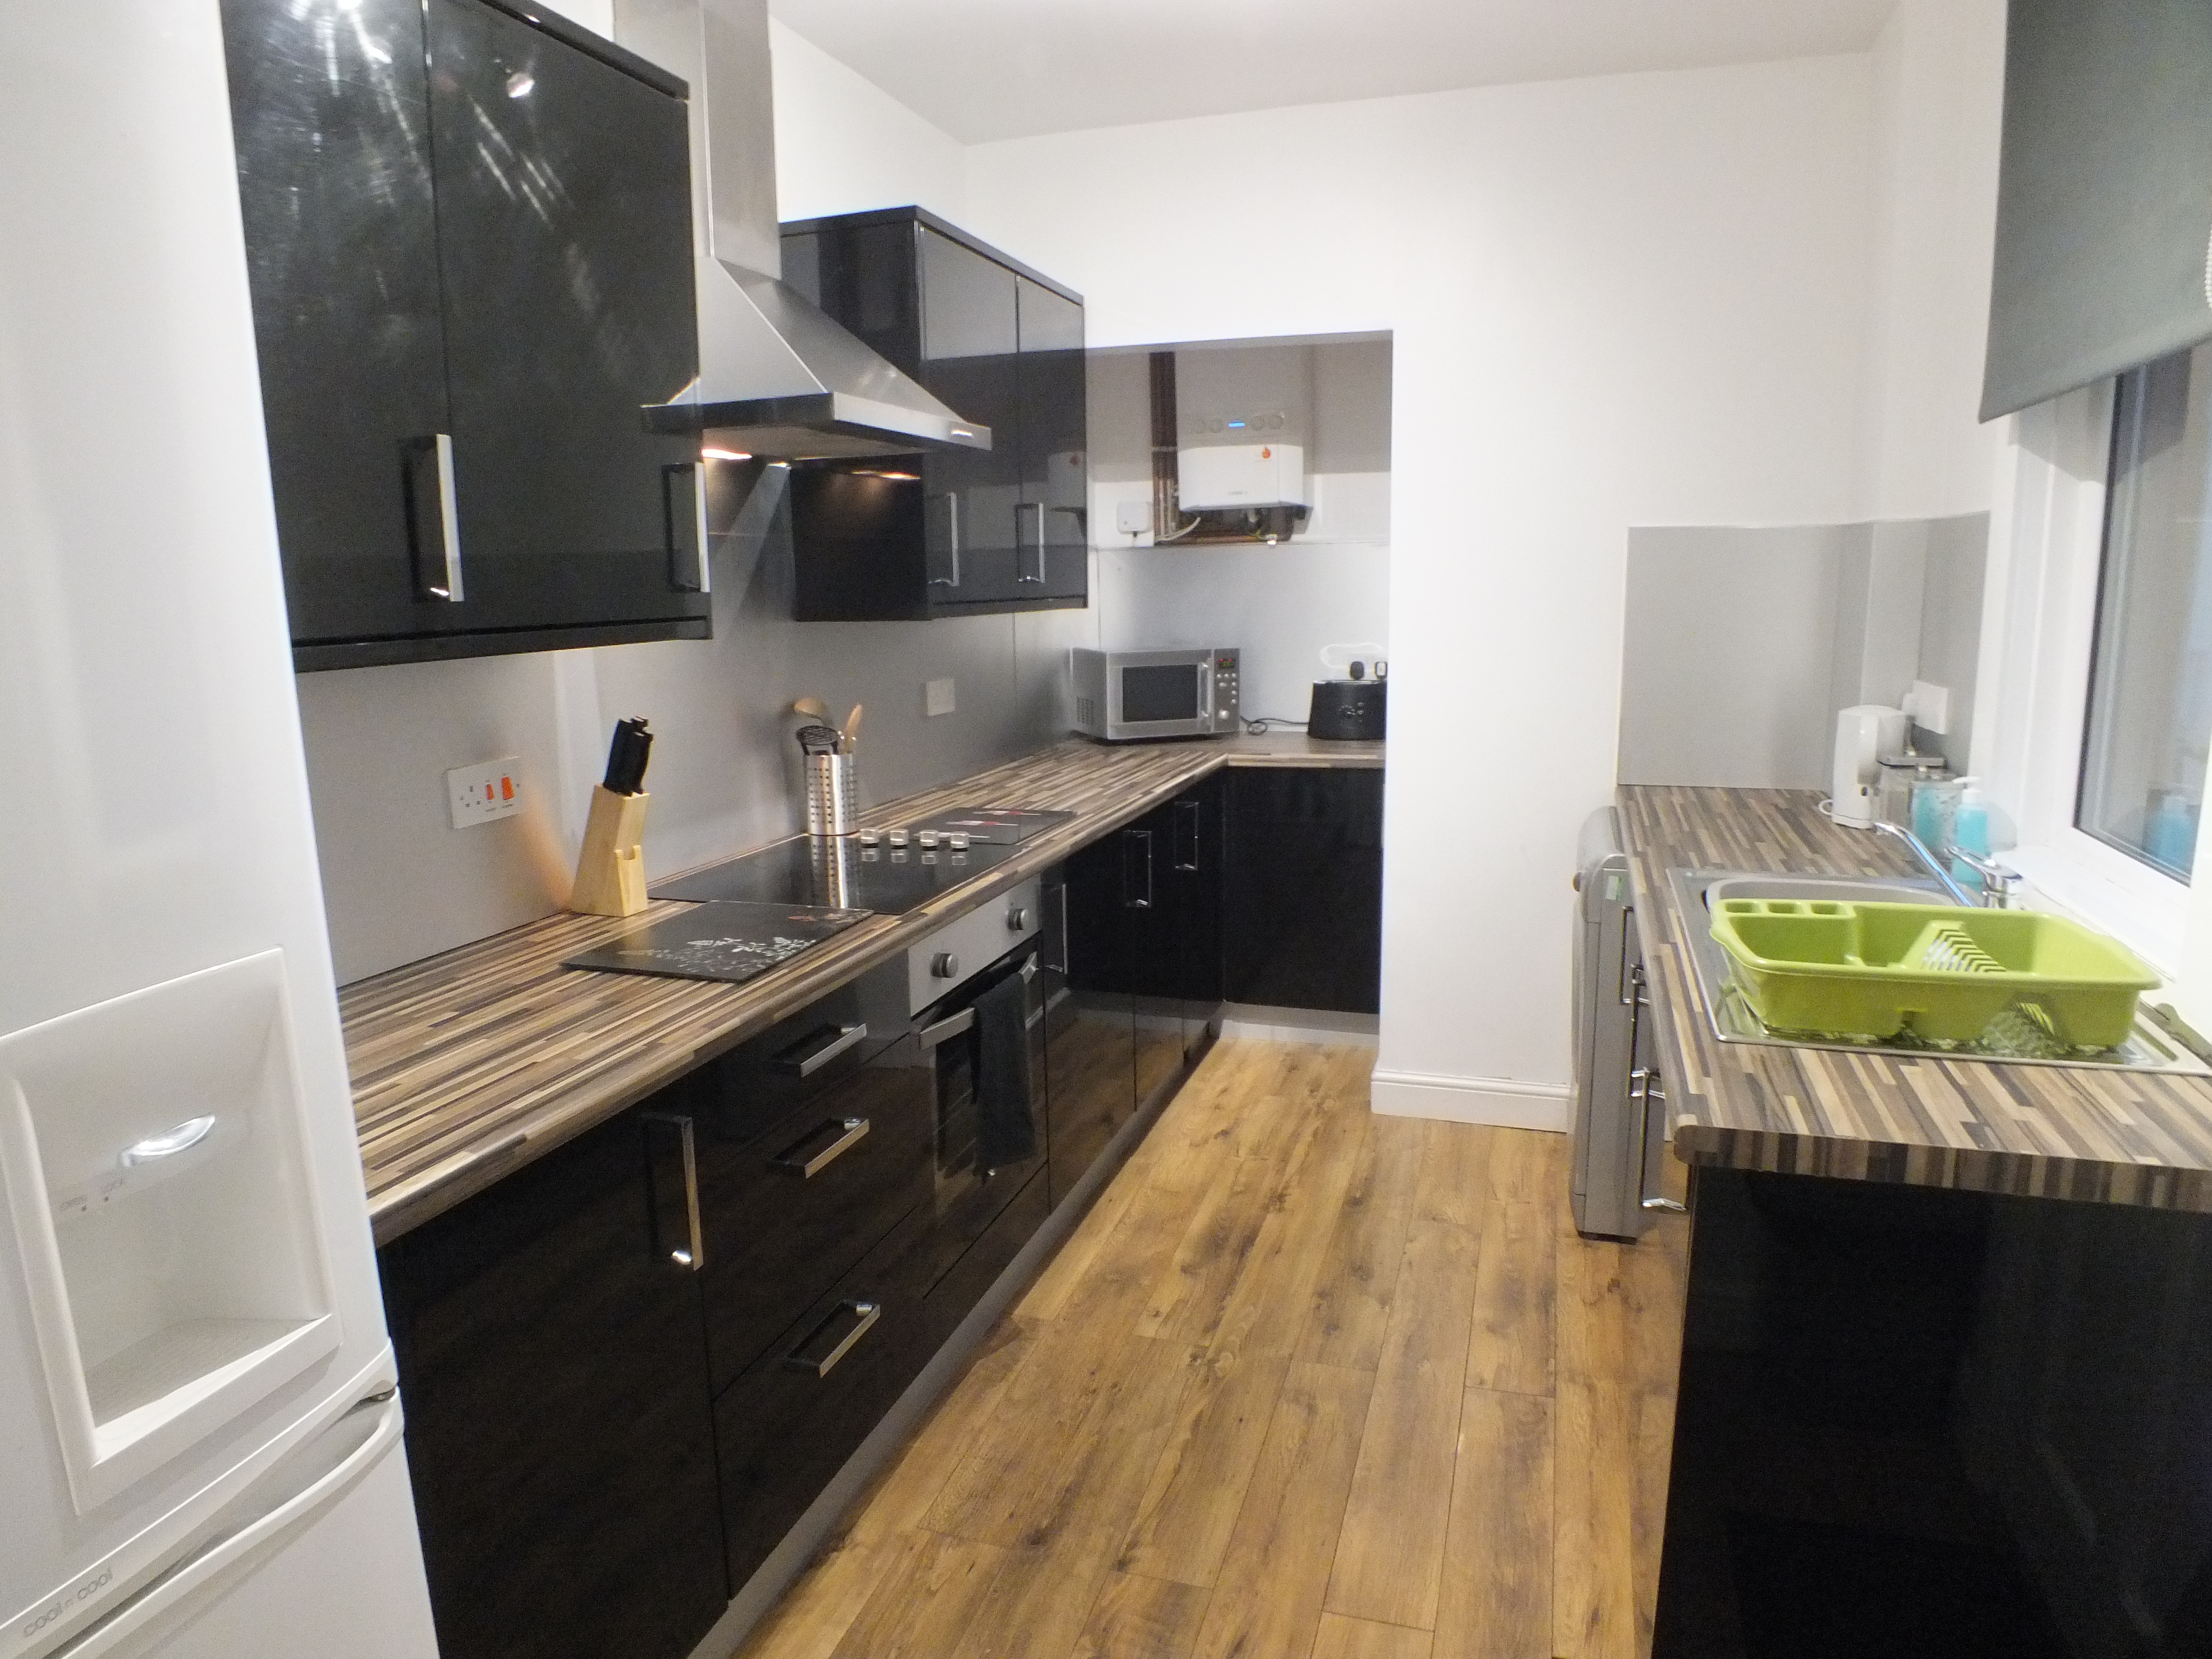 4 Bed Student House- Walthall Street, Crewe